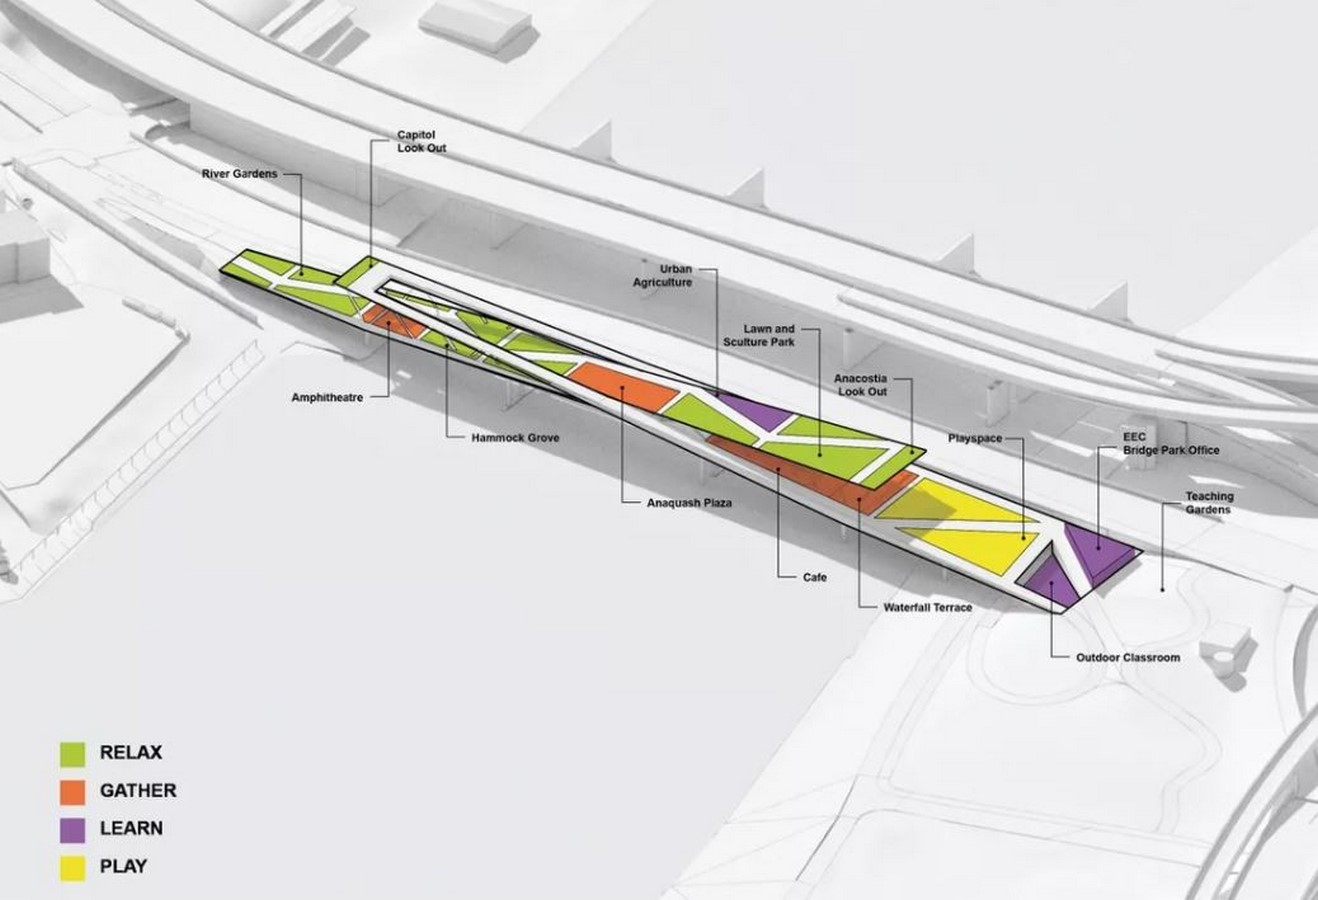 11th Street Bridge Park by Rem Koolhaas: Uniting the divided city - Sheet5